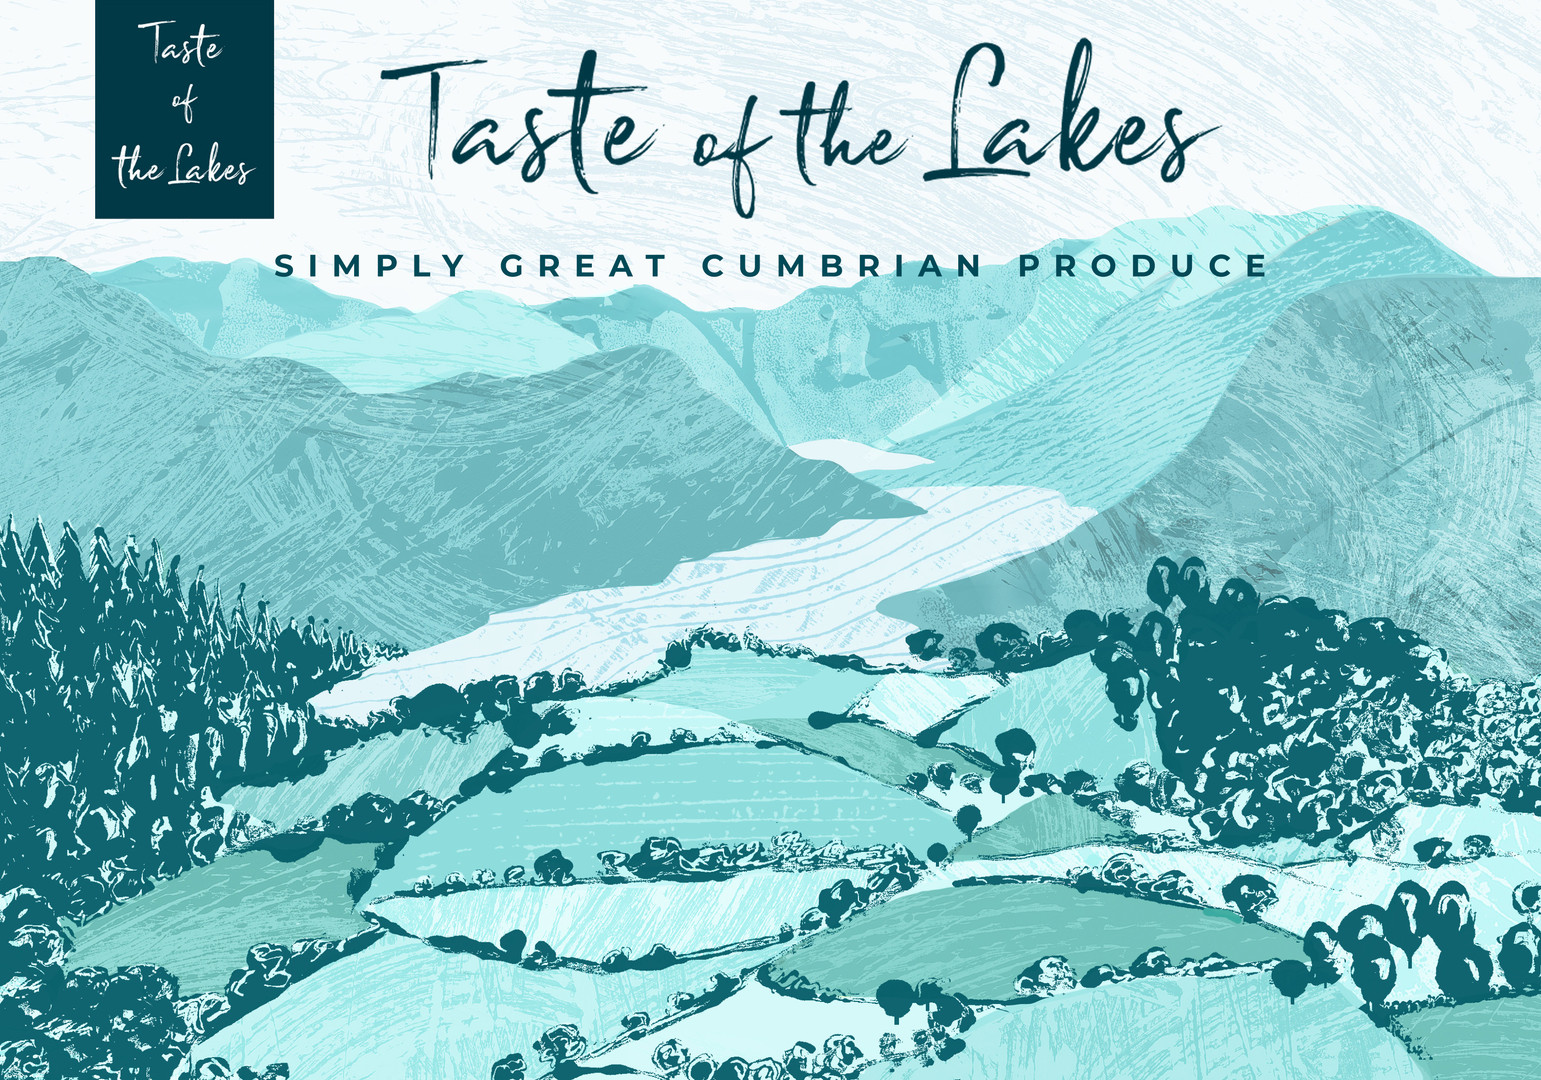 illustrated web banner and branding, lake district branding cumbria design, Jenny Daymond Design and Illustration